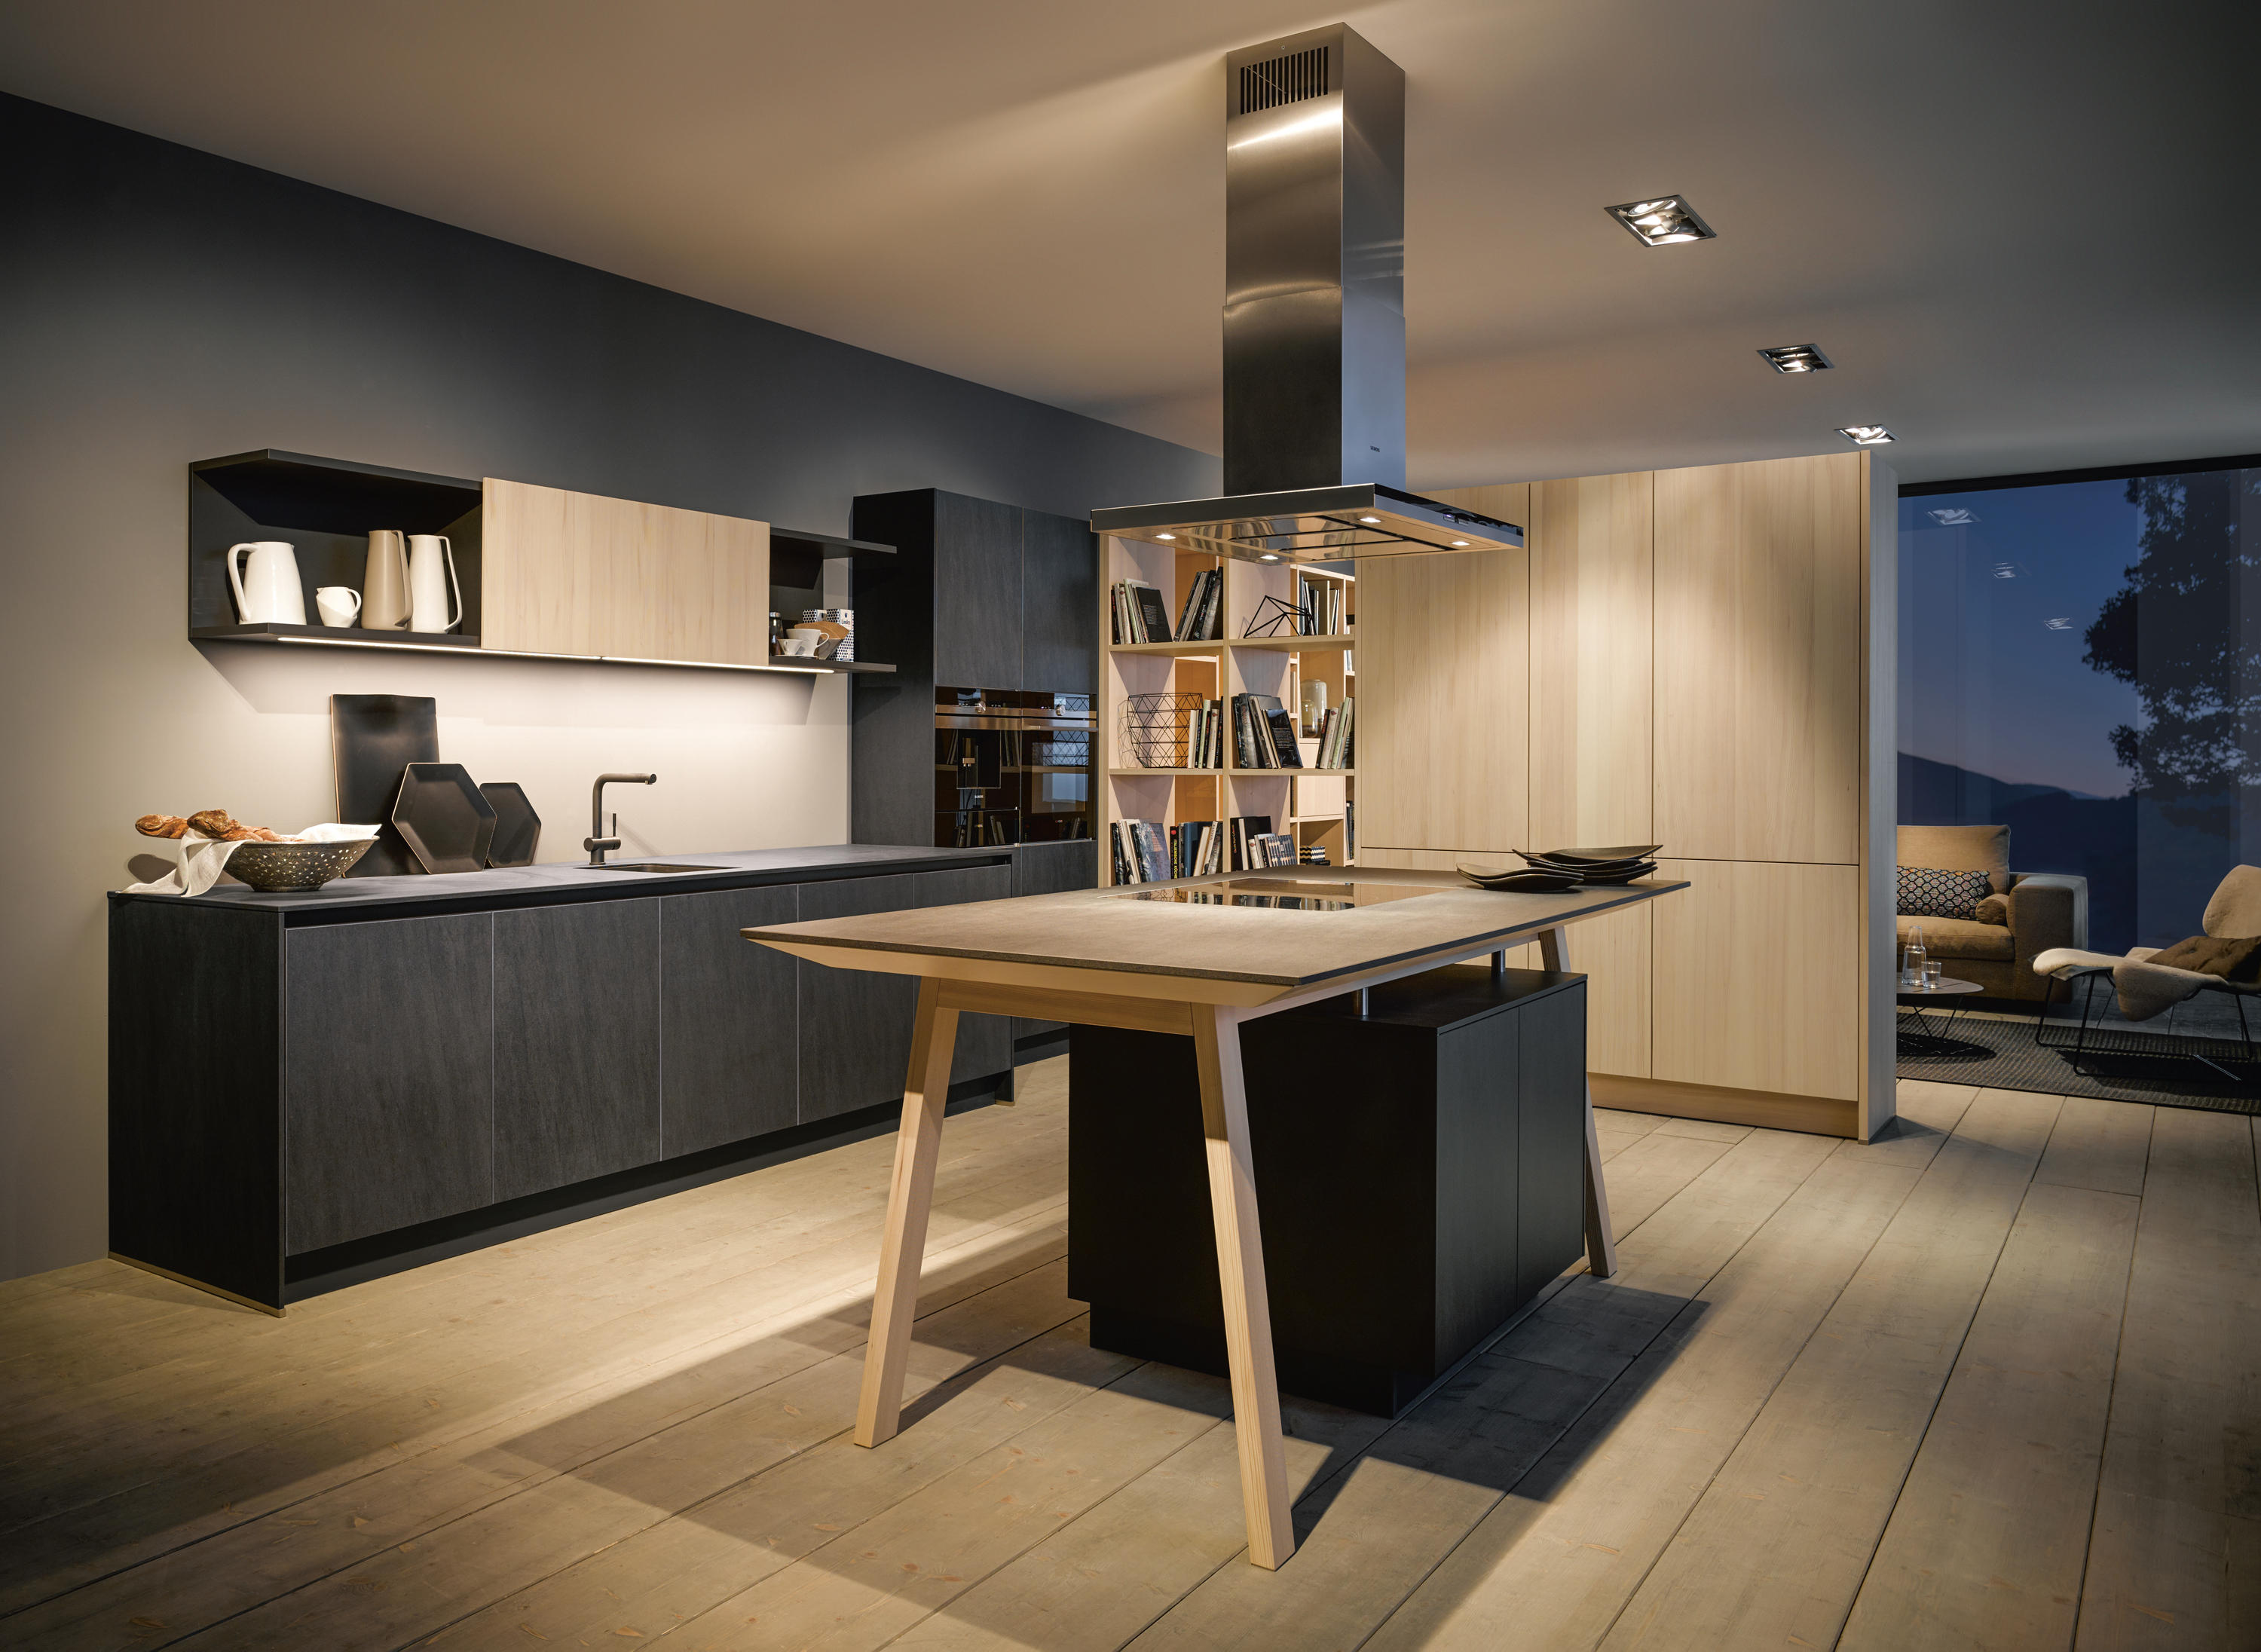 Next125 cooking table - island kitchens from next125 | architonic